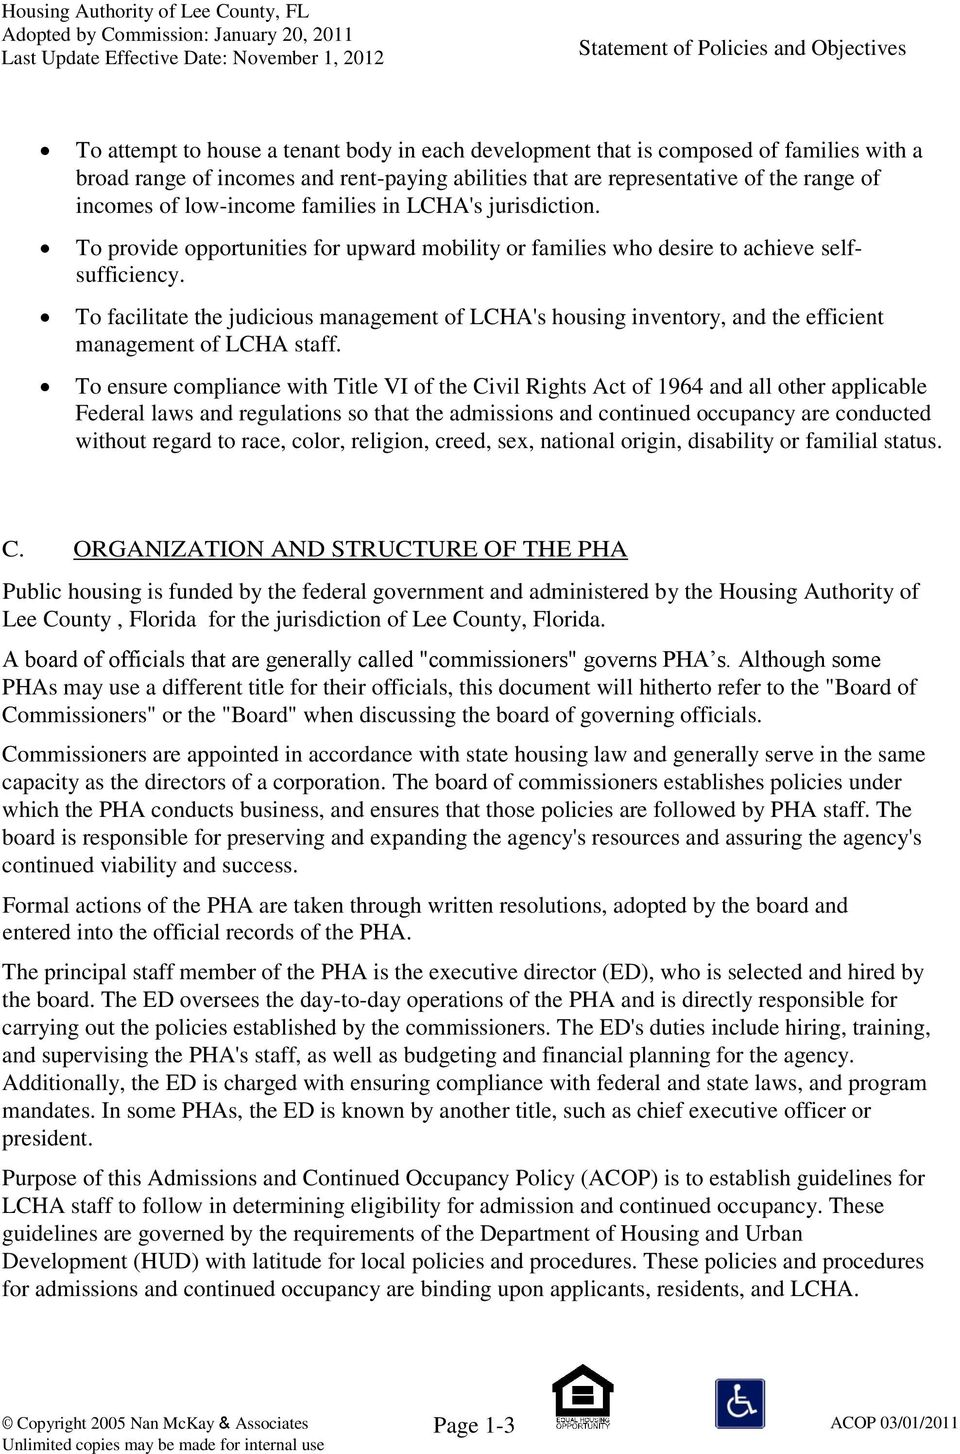 To facilitate the judicious management of LCHA's housing inventory, and the efficient management of LCHA staff.